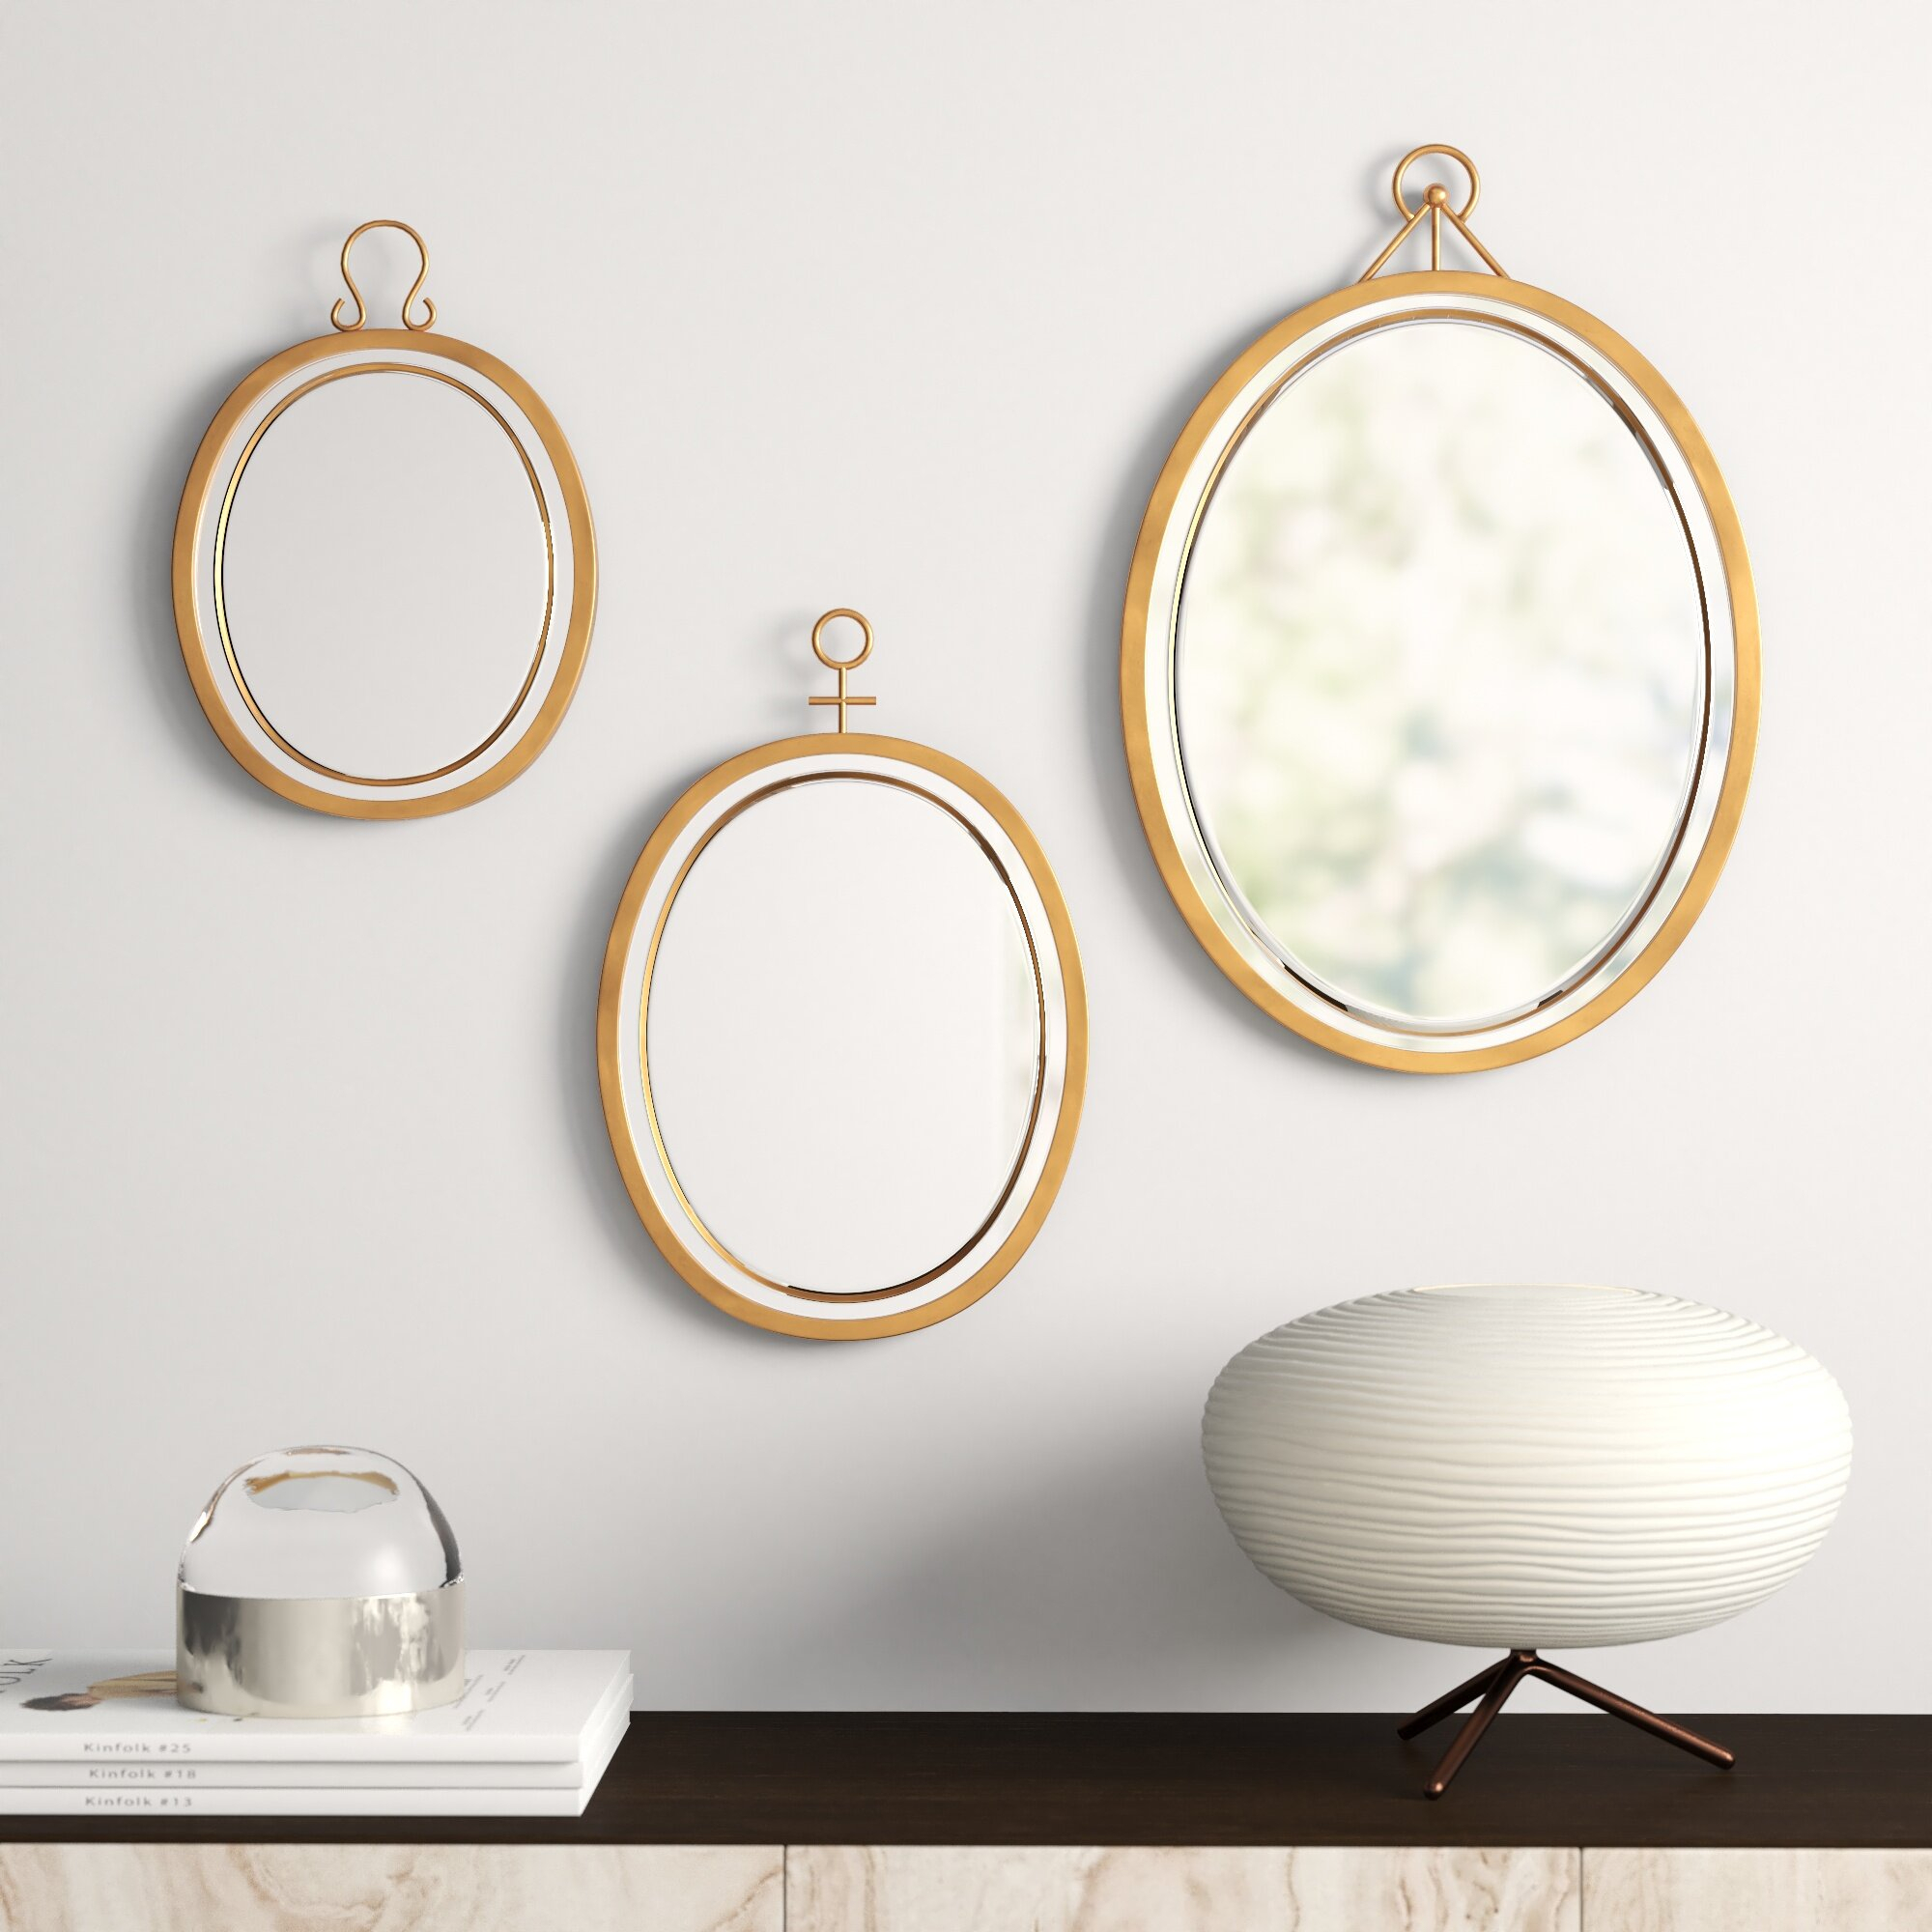 3 Piece Oval Metal Frame Mirror Set Regarding Colton Modern & Contemporary Wall Mirrors (View 2 of 30)